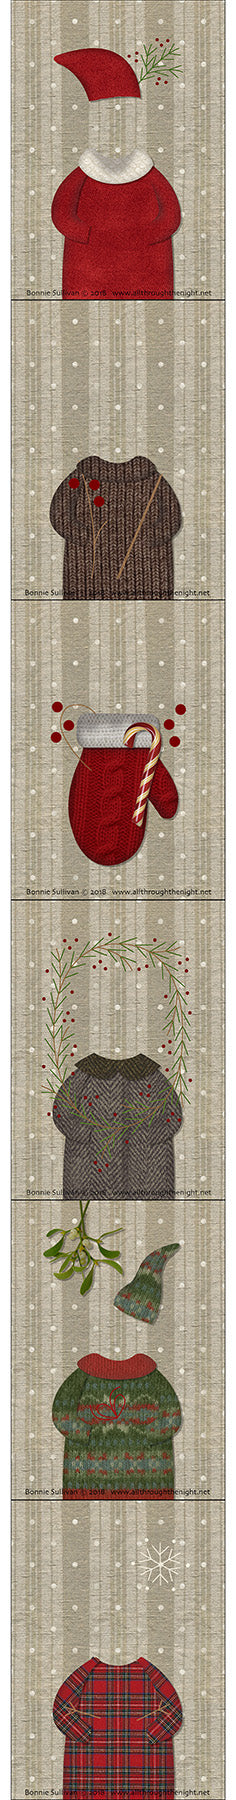 F1802 - Chrismutts Preprinted Fabric